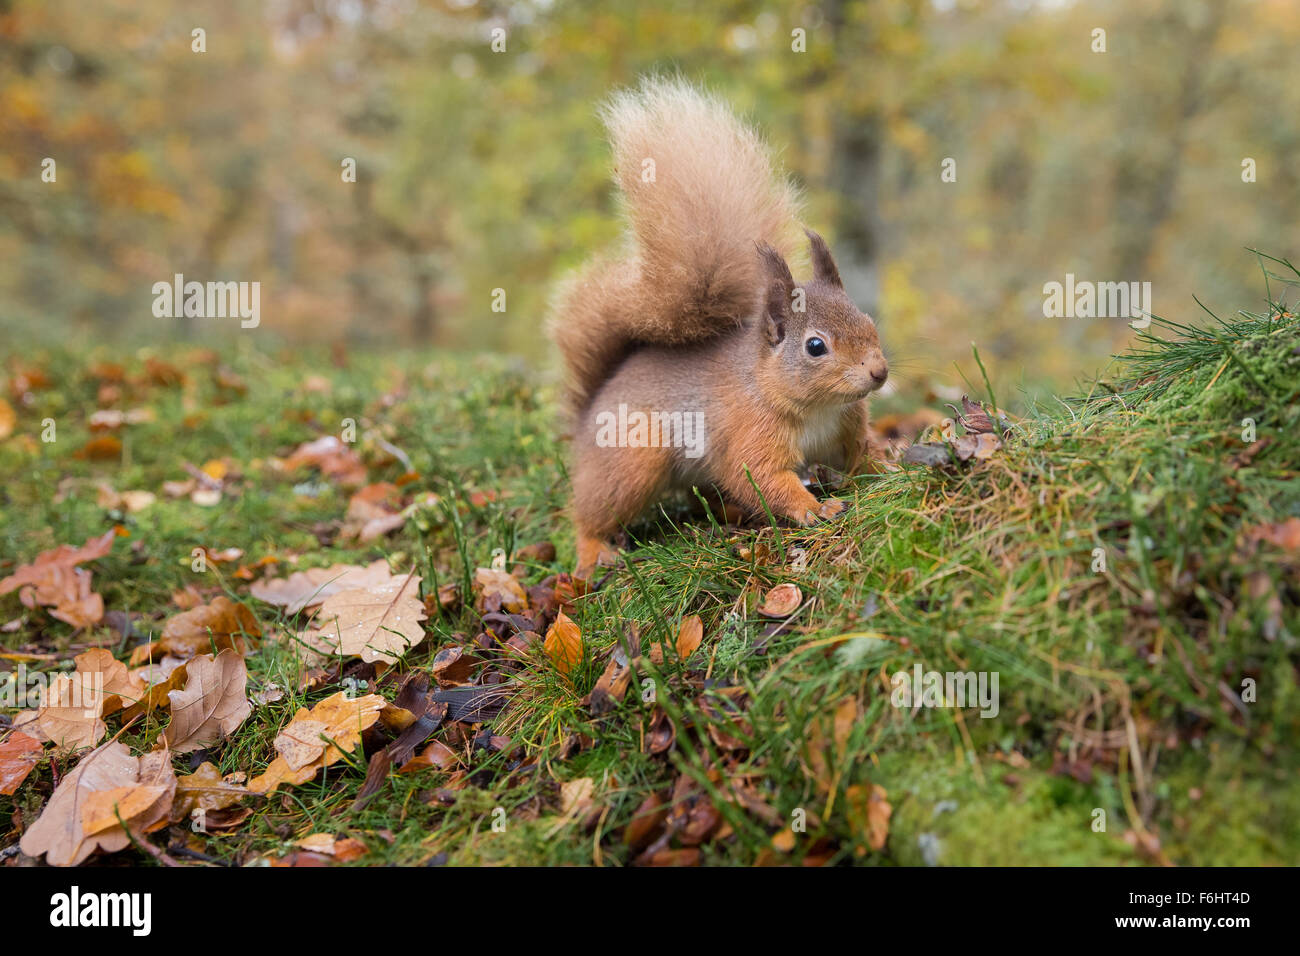 Red Squirrel (Sciurus Vulgaris) pictured stood in a forest in the Cairngorms National Park, Scotland. - Stock Image